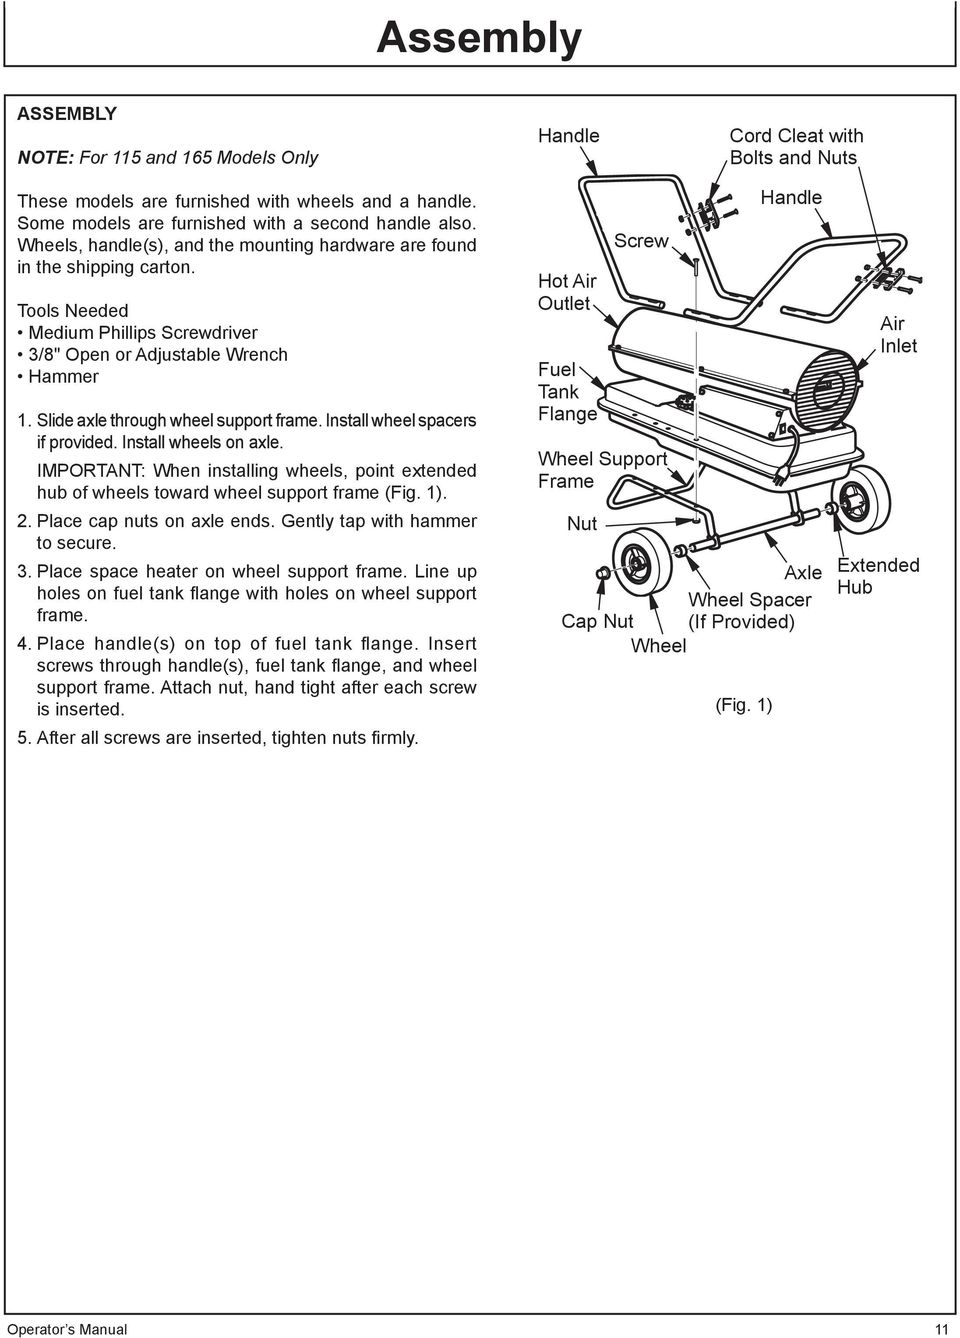 Install wheel spacers if provided. Install wheels on axle. IMPORTANT: When installing wheels, point extended hub of wheels toward wheel support frame (Fig. 1). 2. Place cap nuts on axle ends.